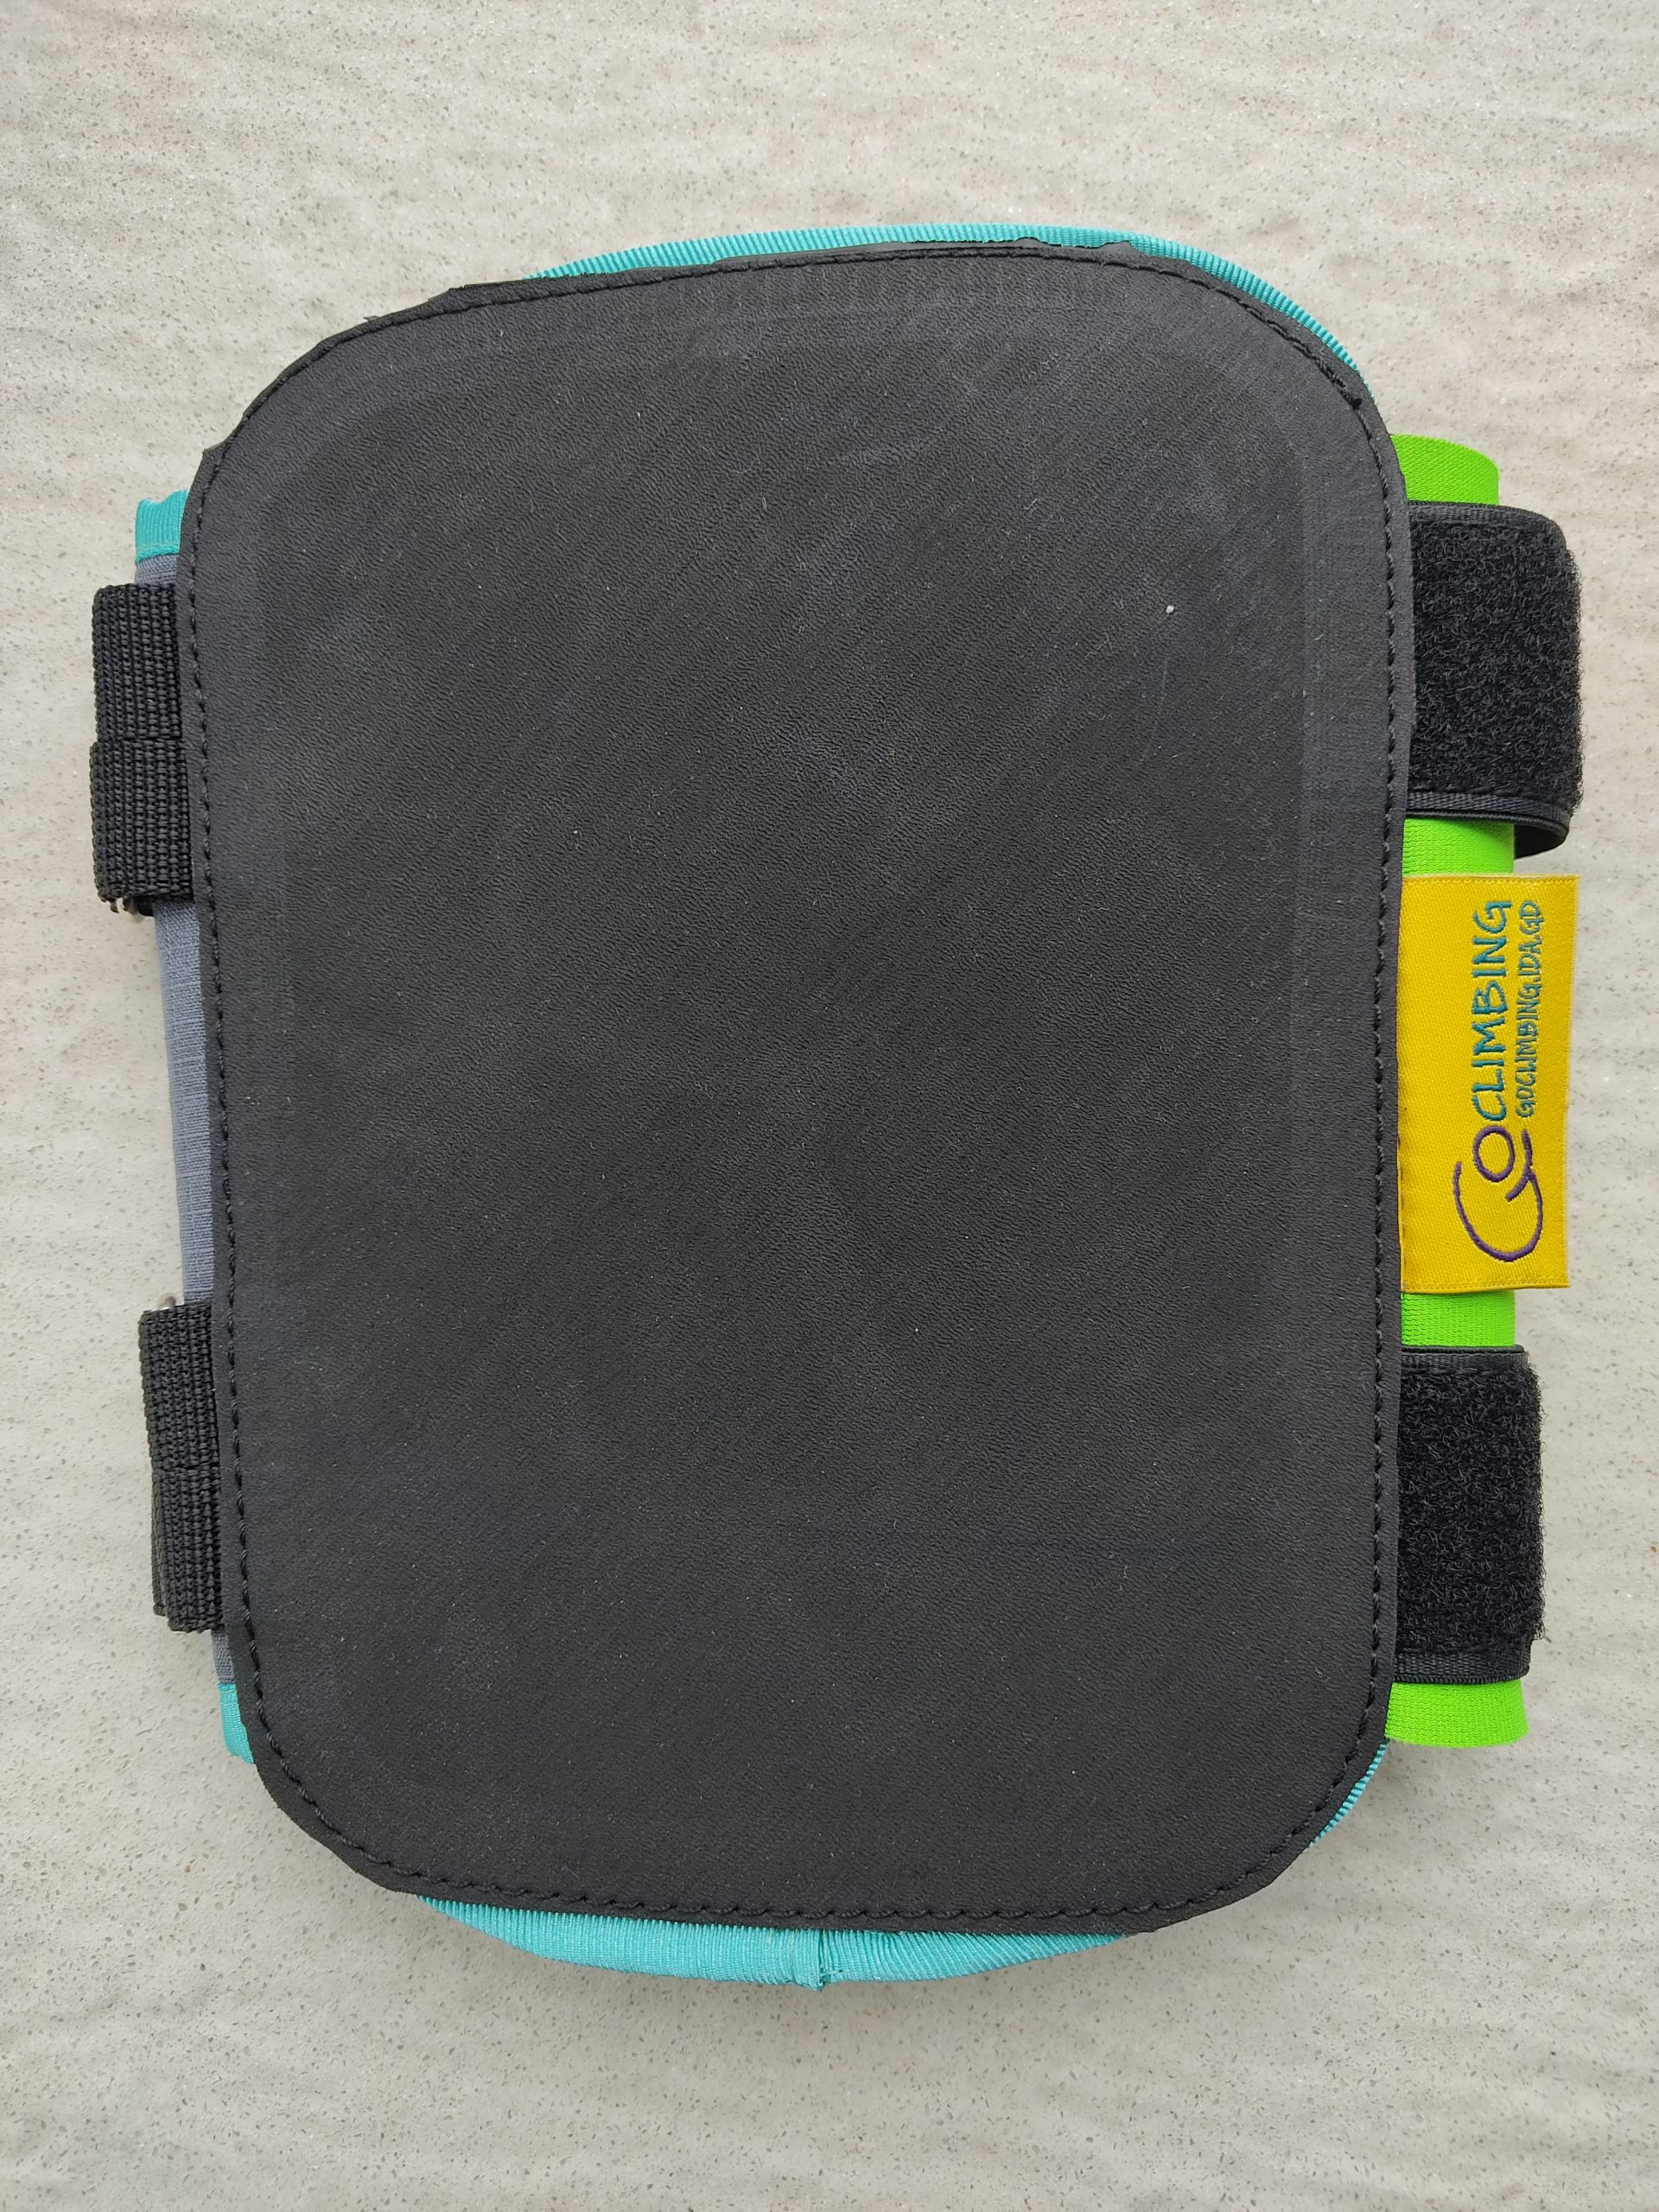 Acrisius kneepad - the Go Climbing weapon for hard projects